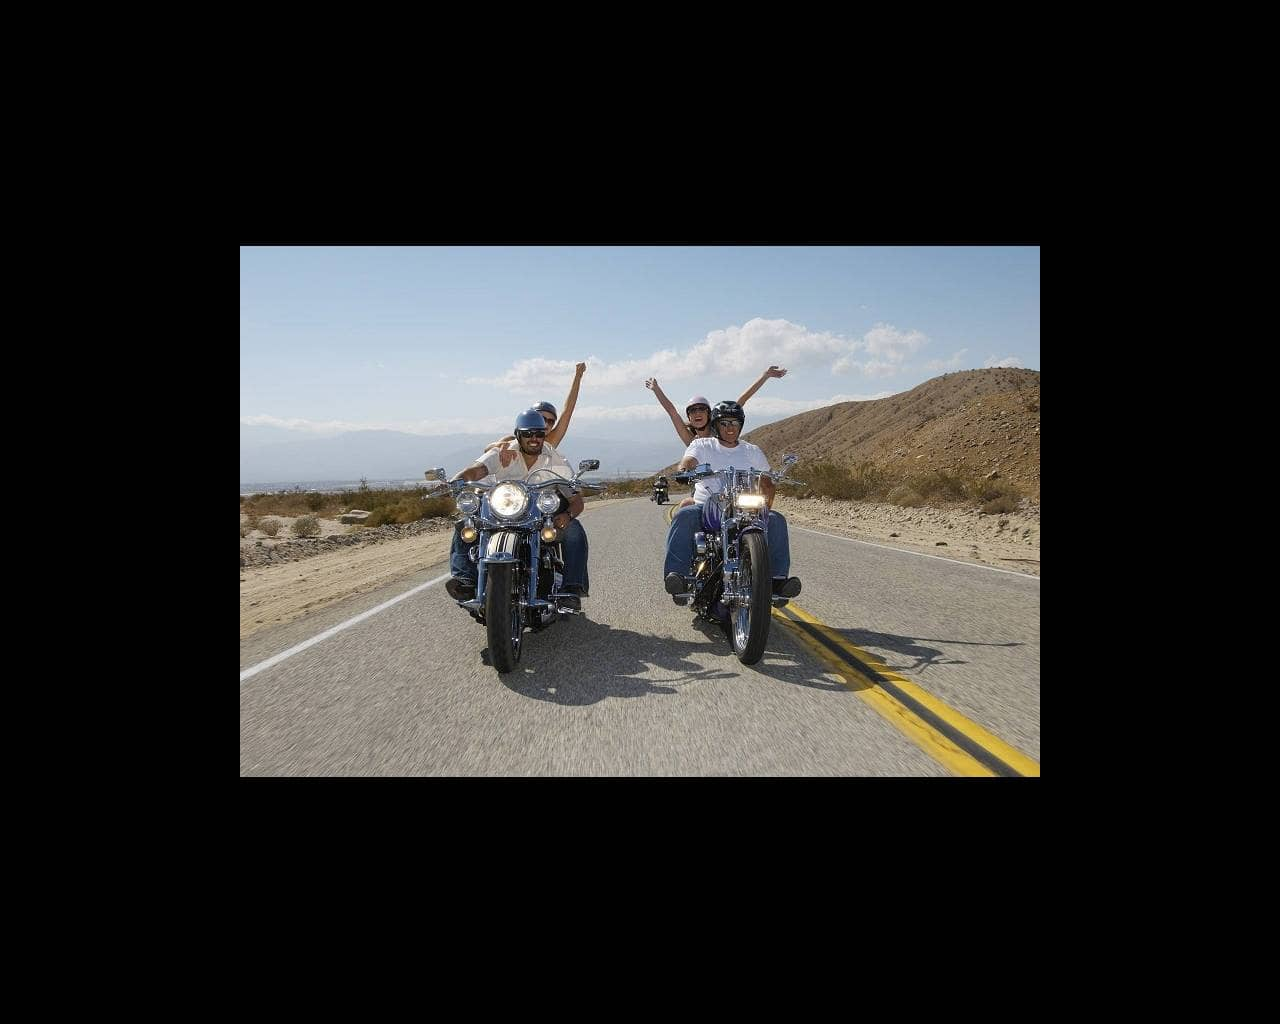 Couples riding motorcycles